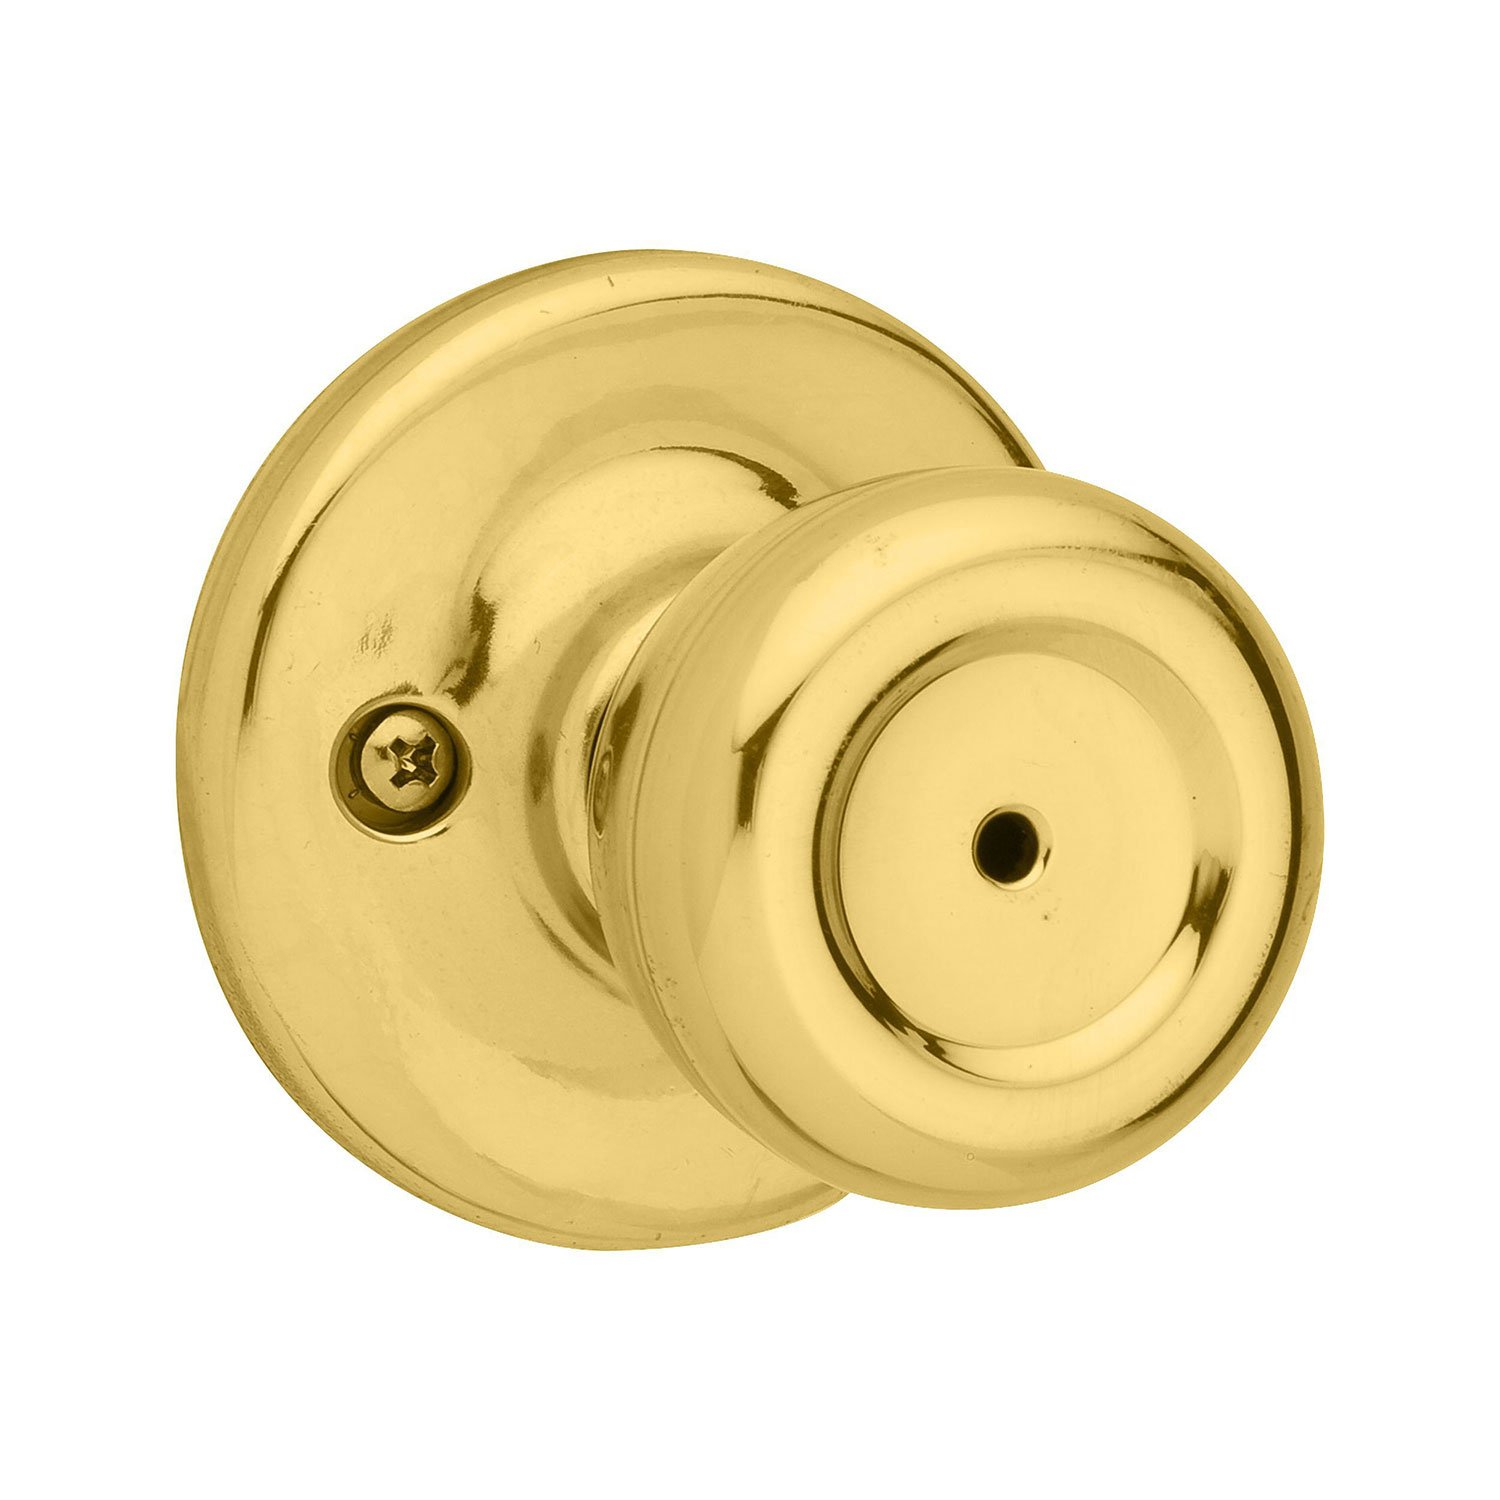 Kwikset 93001-876 Kwikset Mobile Home Bed & Bath Knob in Polished Brass